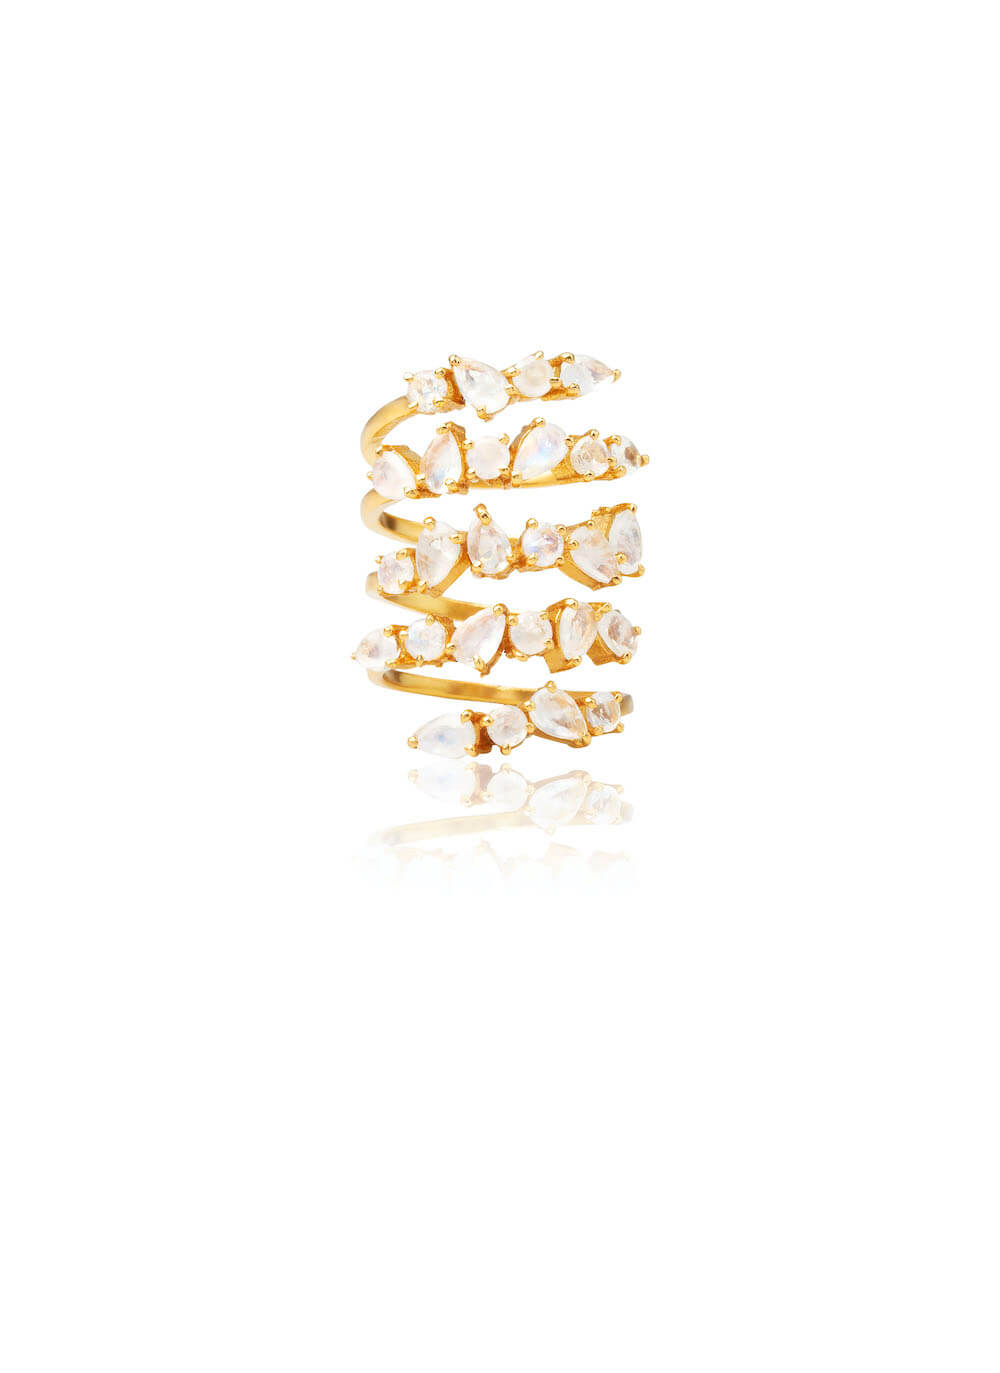 MOONSTONE GOLD VERMEIL SPIRAL RING